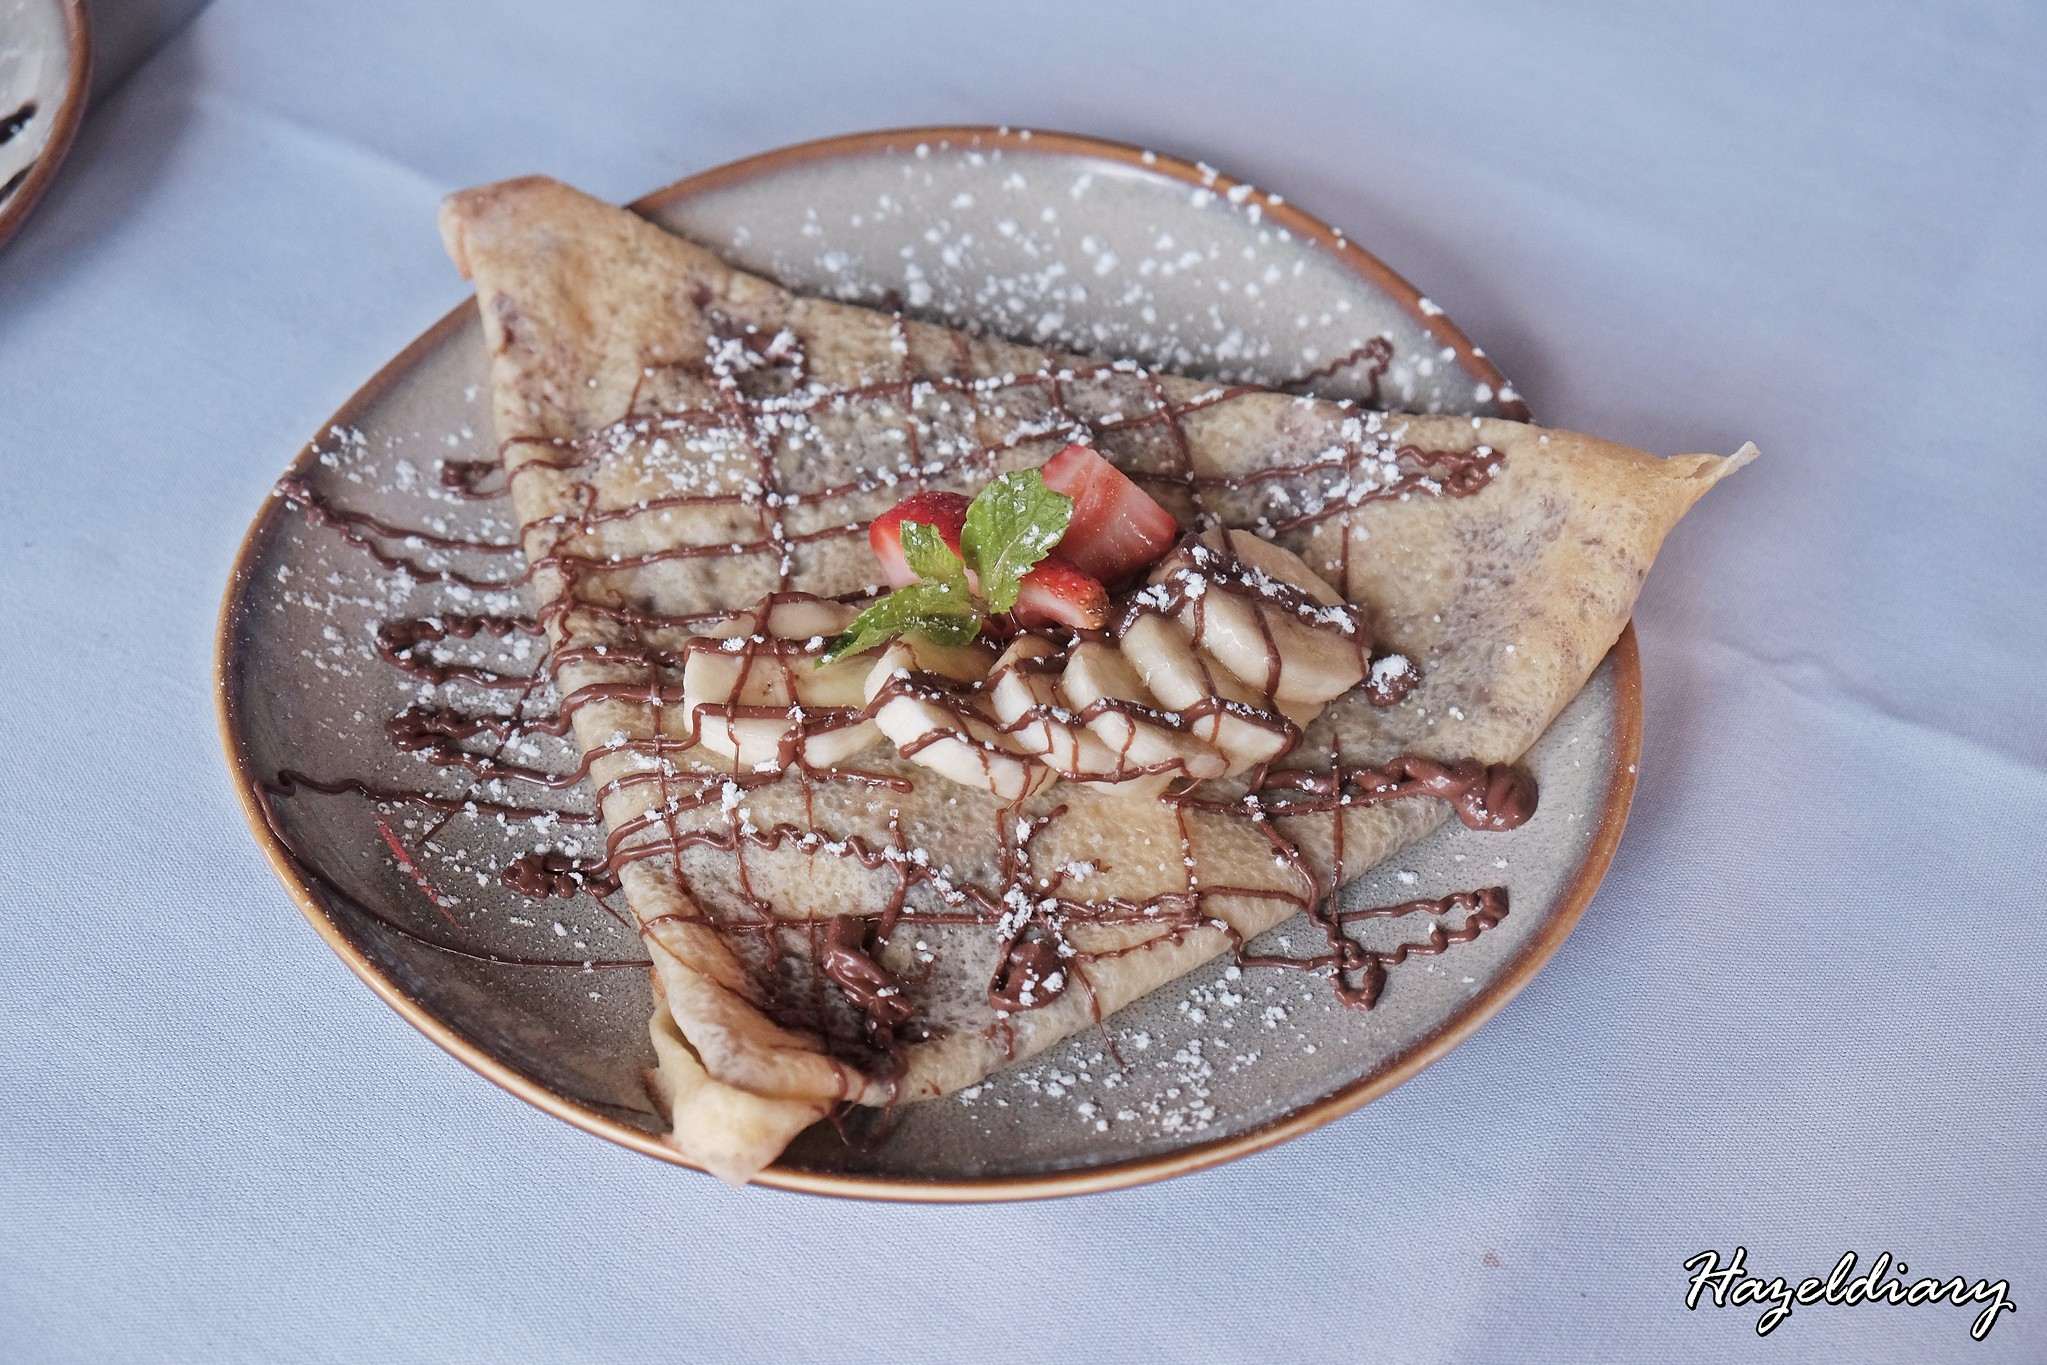 Les Bouchons Rive Gauche-crepe with nutella